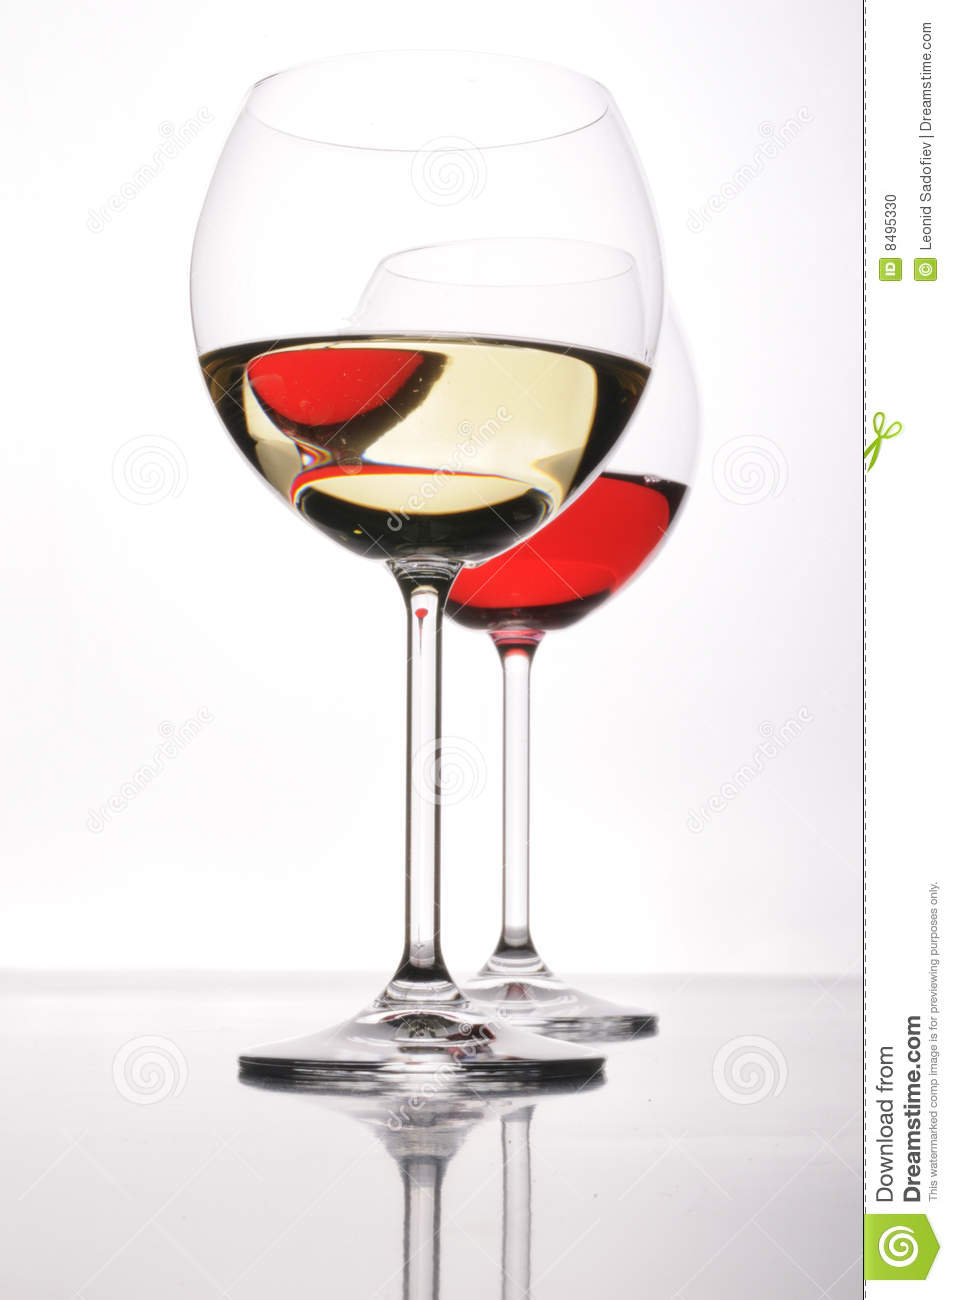 Two Glasses Of Red And White Wine Stock Photo - Image: 8495330